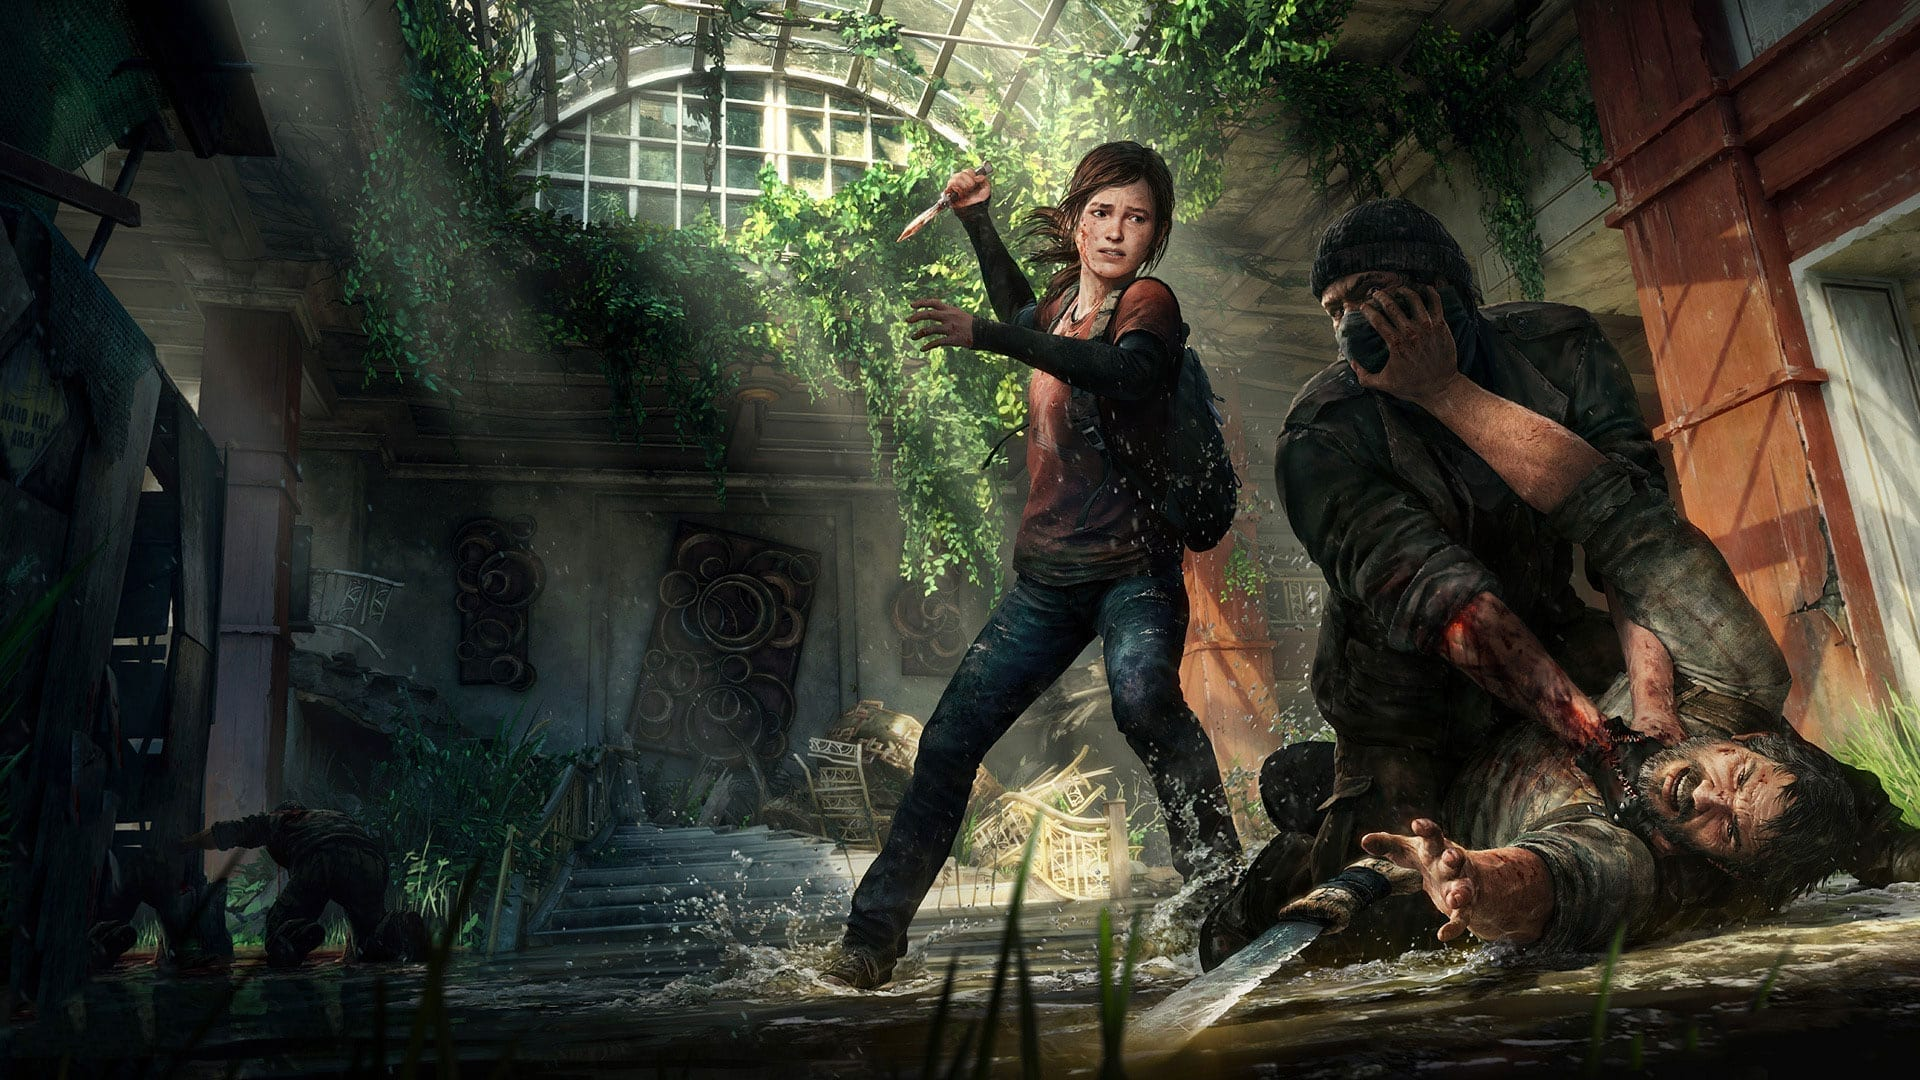 The Last of Us PS5 remake